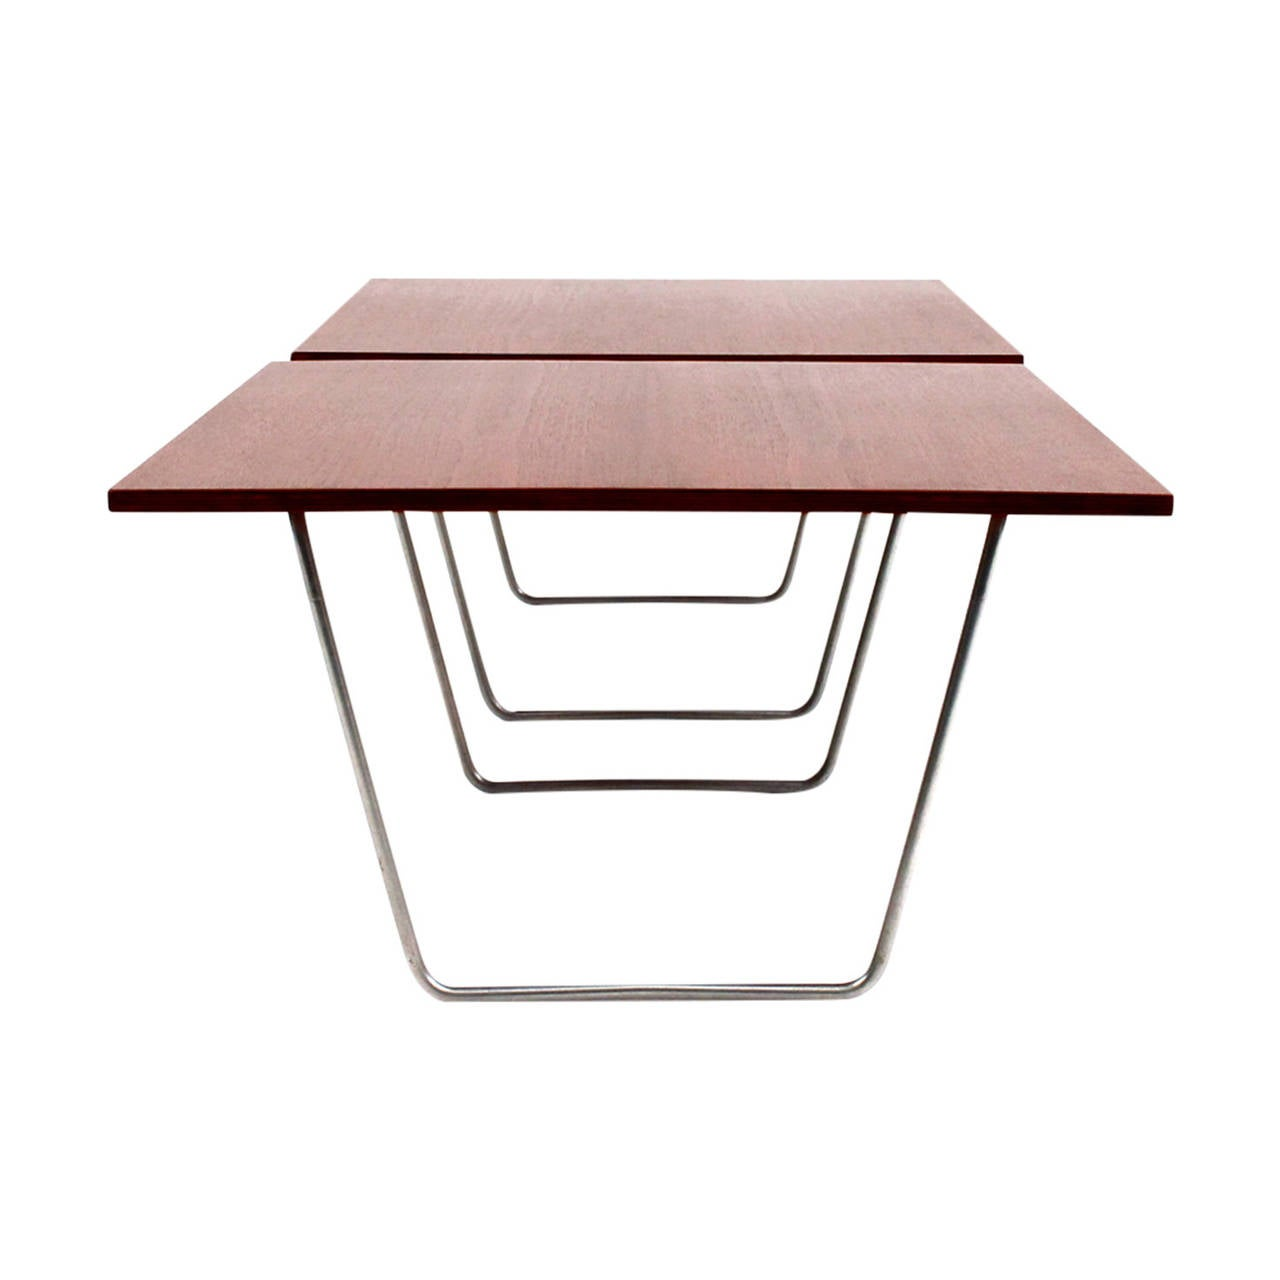 Pair Of Teak Quot Bachelor Quot Tables By Verner Panton At 1stdibs